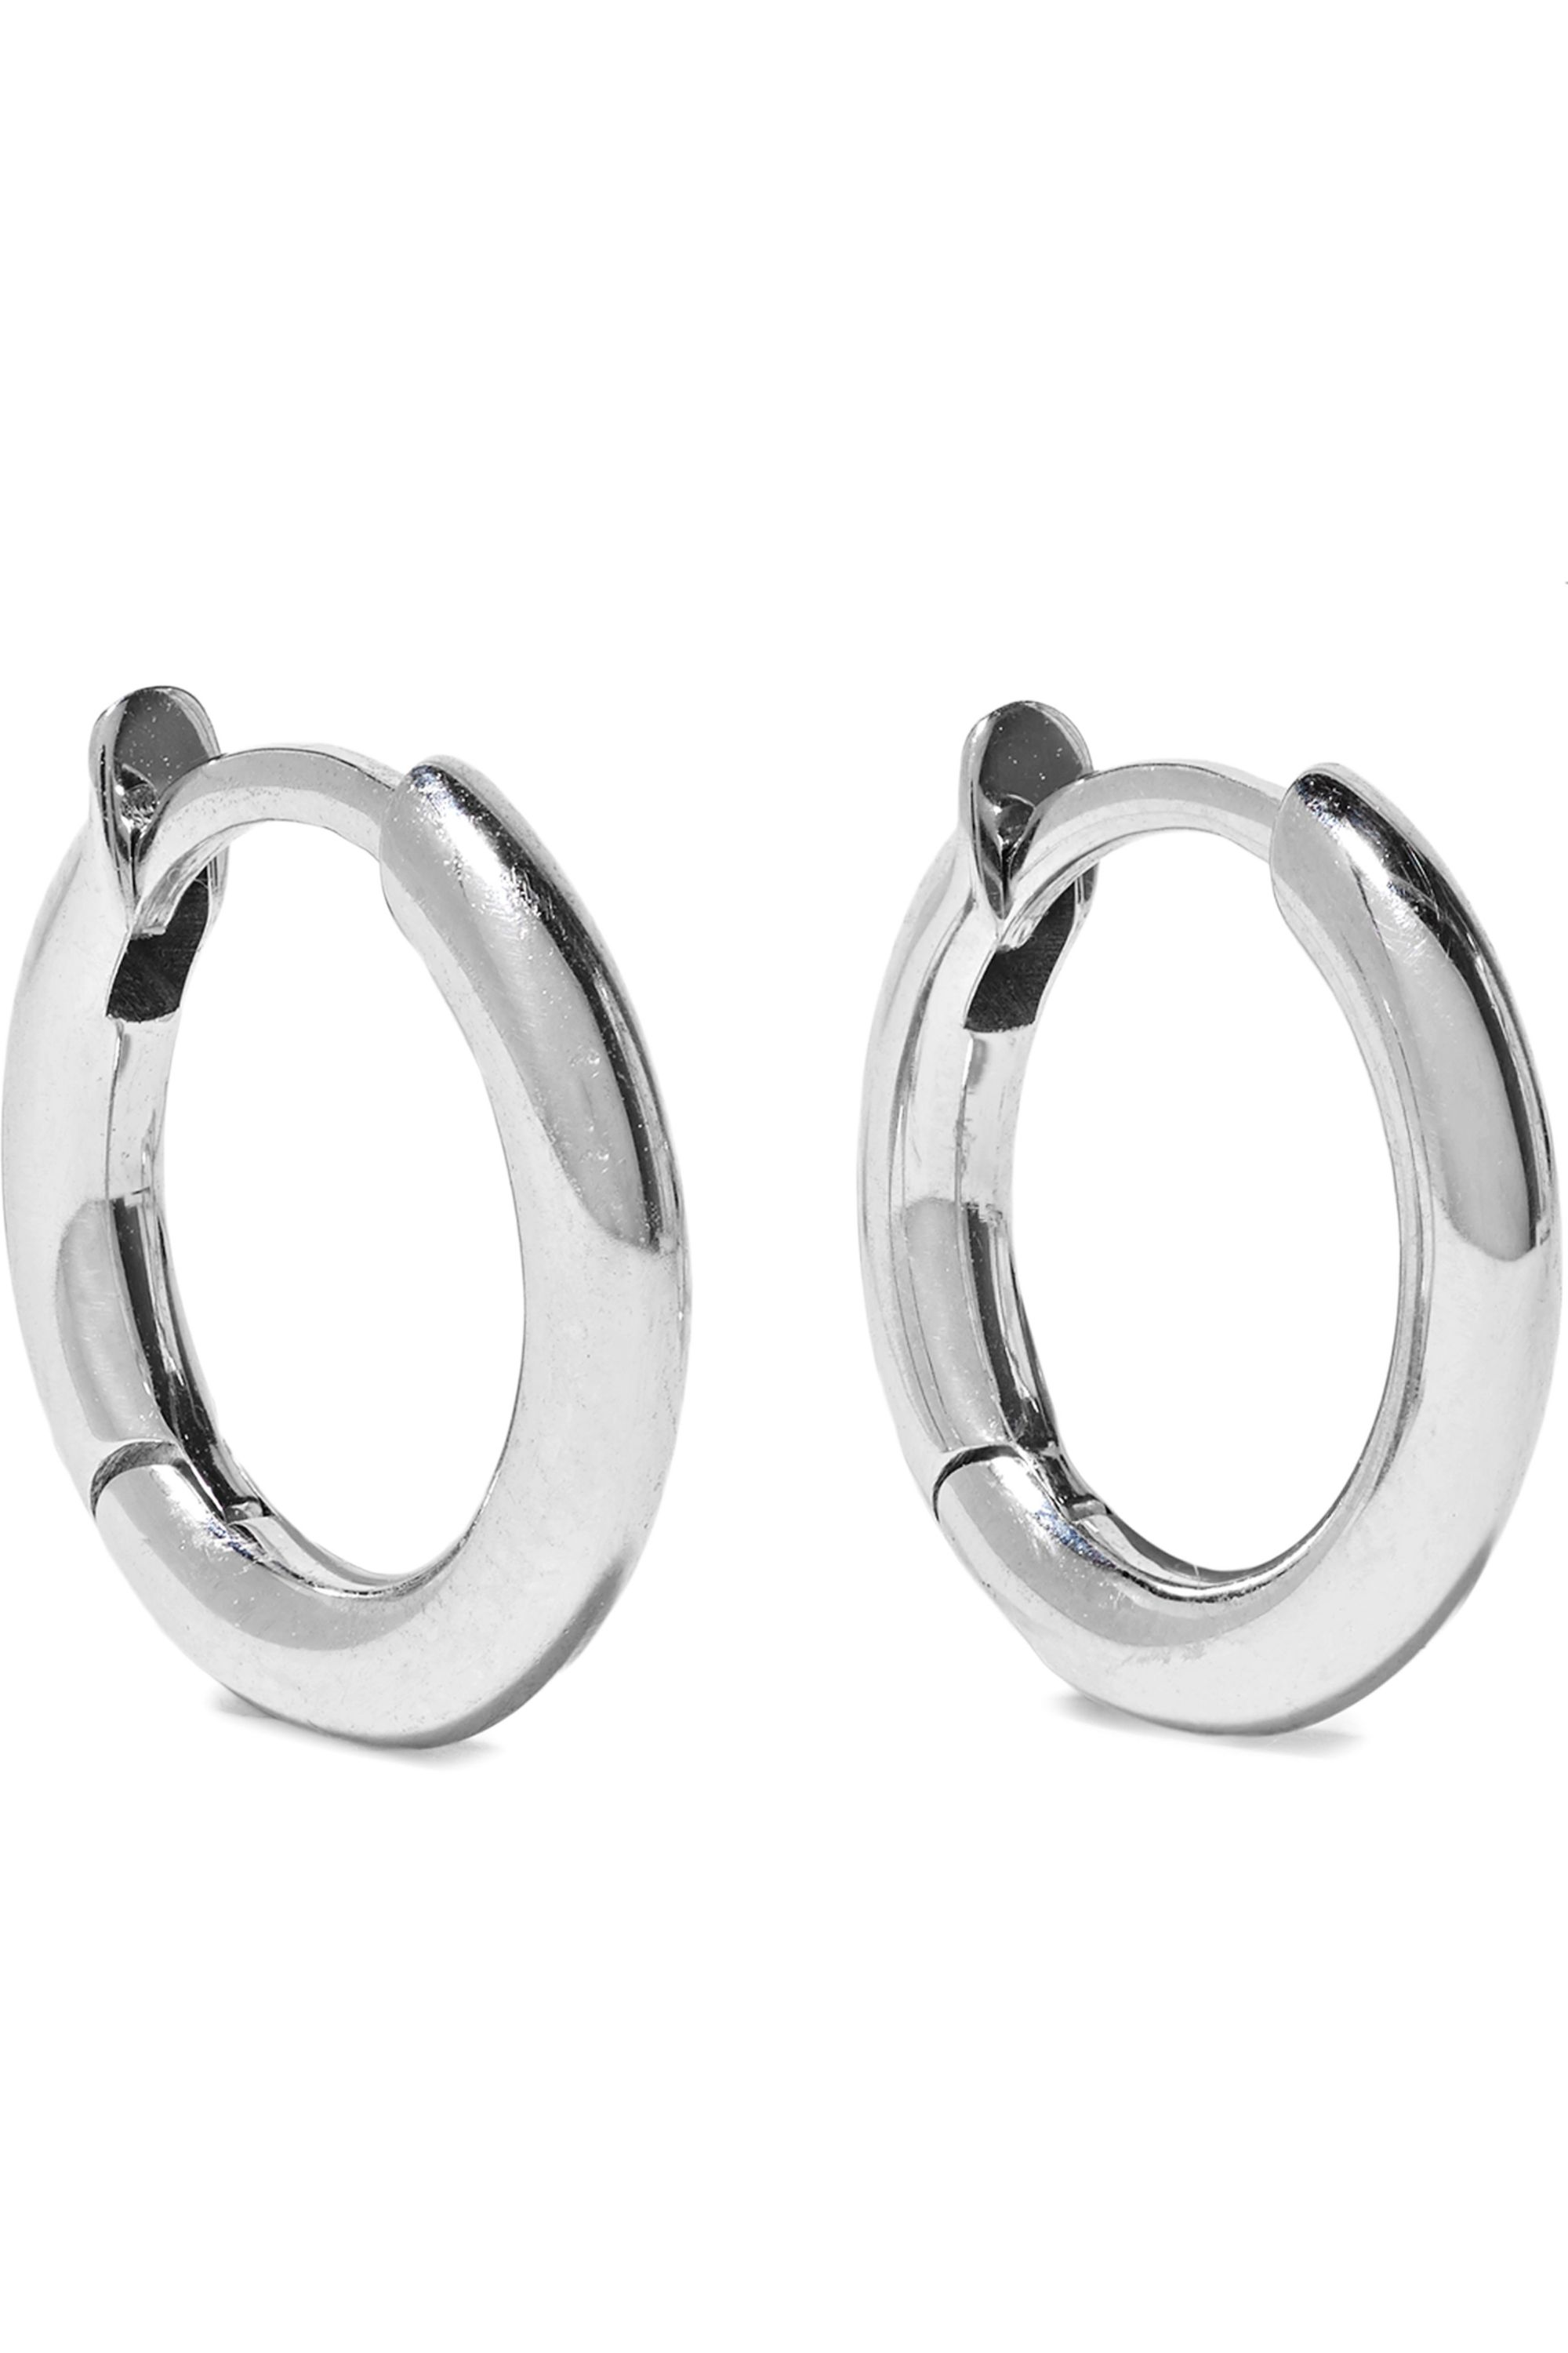 Spinelli Kilcollin Altaire Noir 18-karat white and rose gold and rhodium-plated earrings